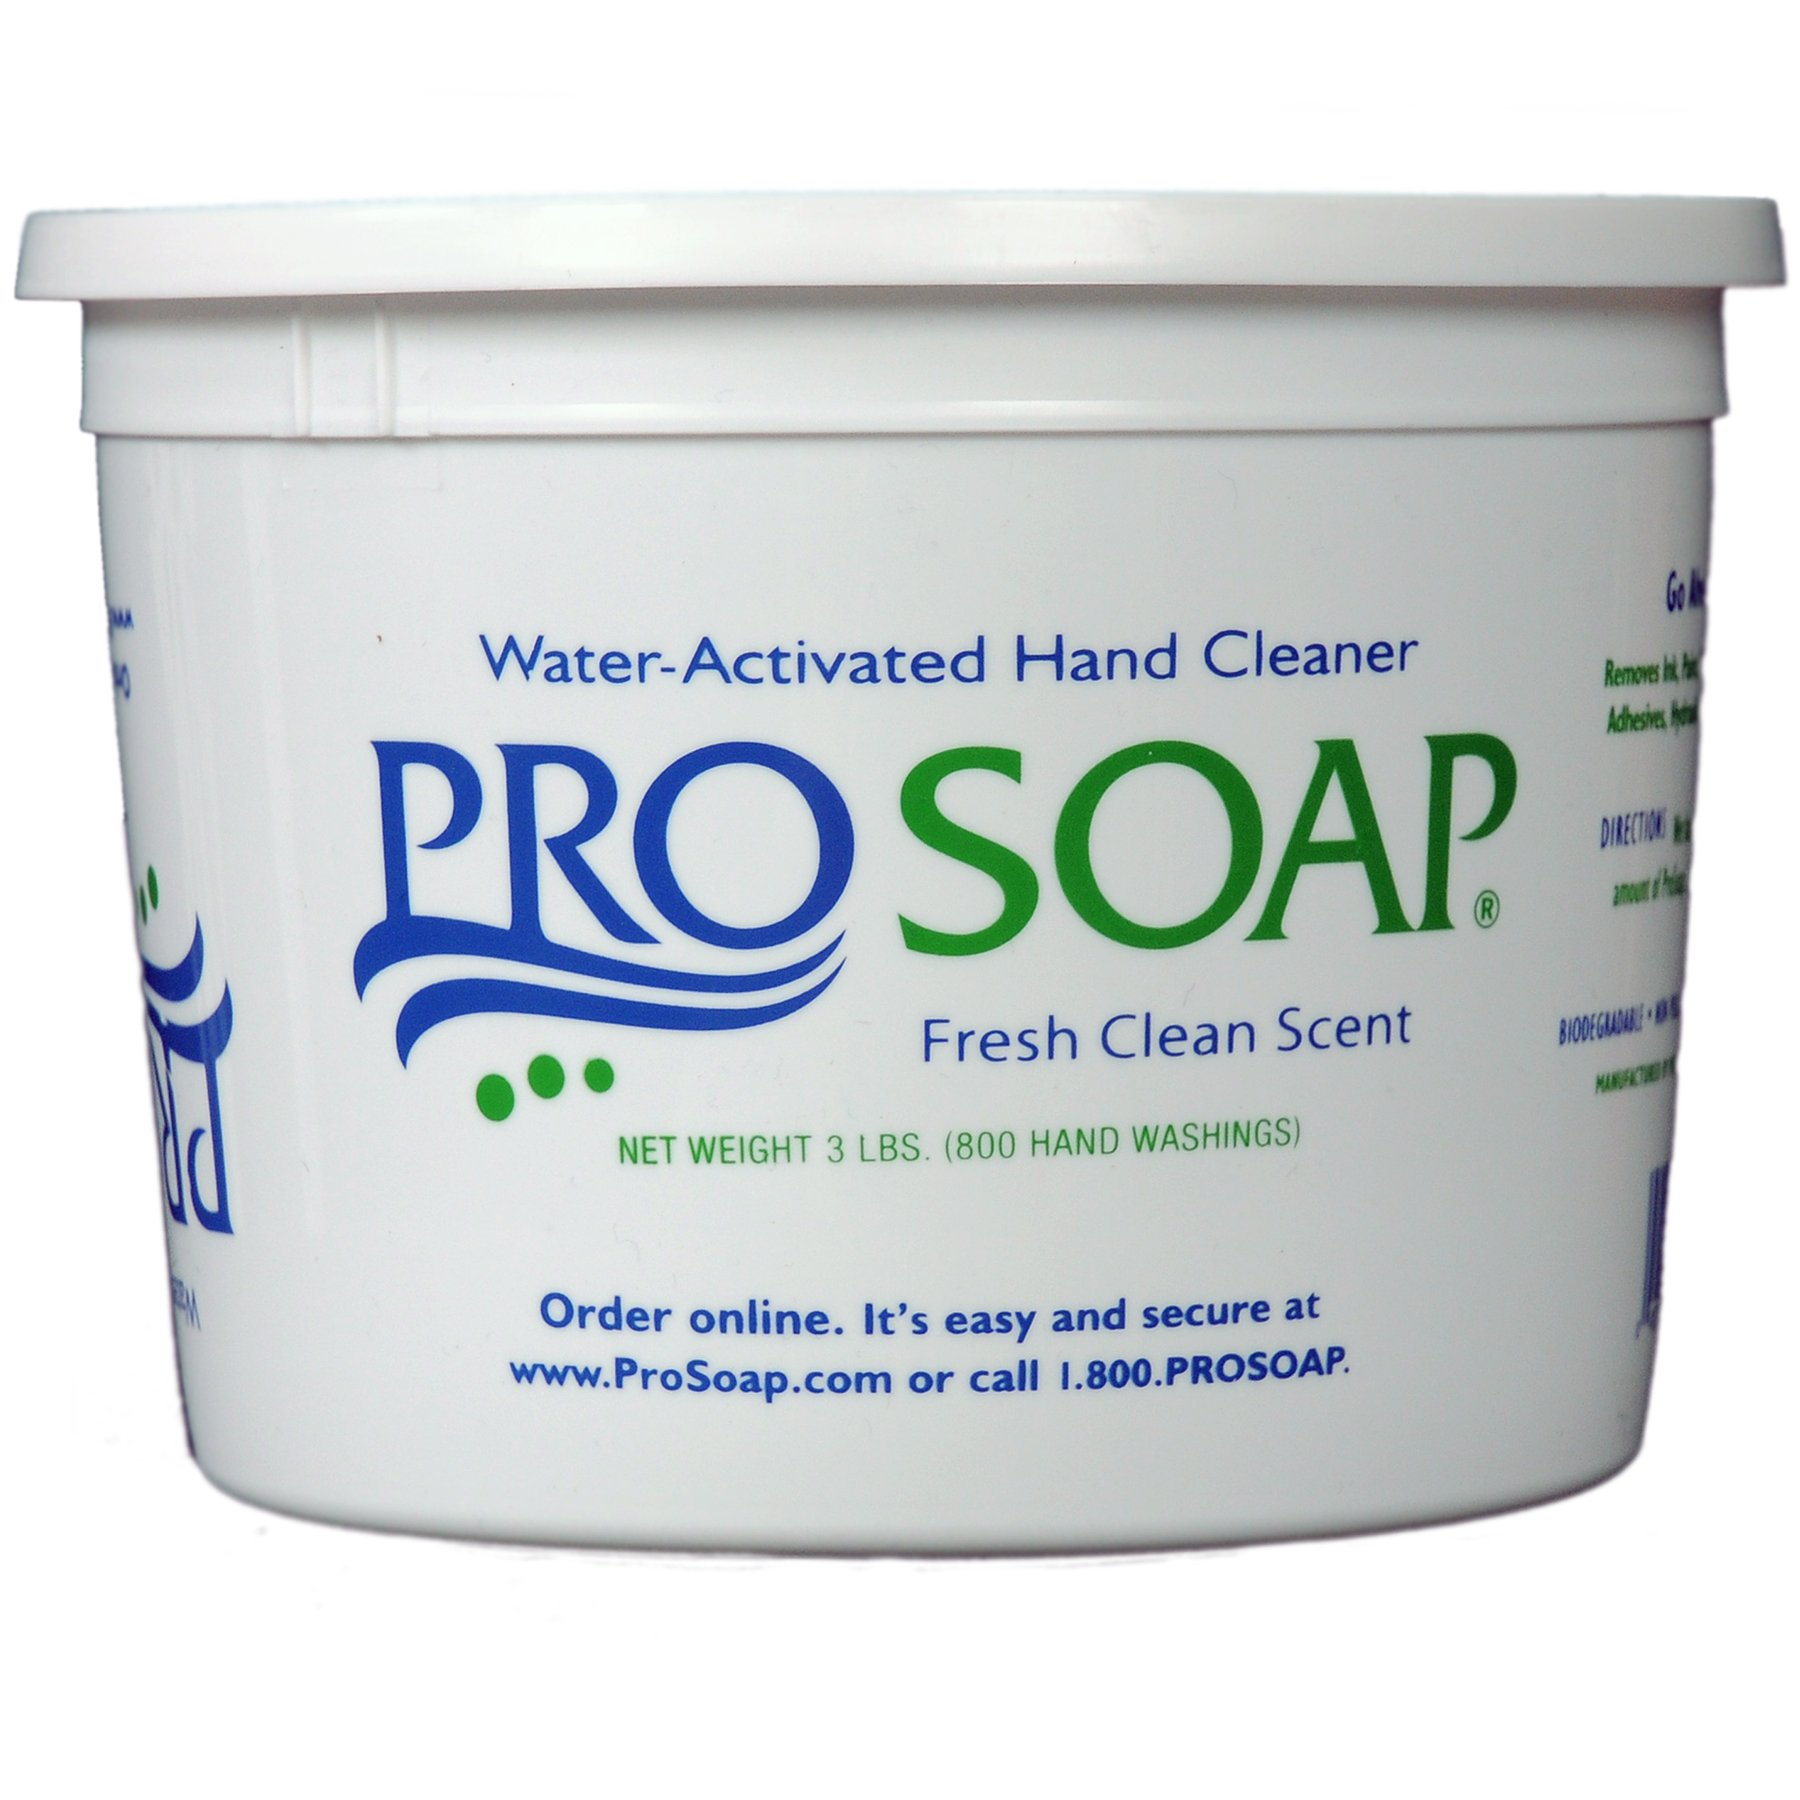 ProSoap 3lb Tub Hand Cleaner product image